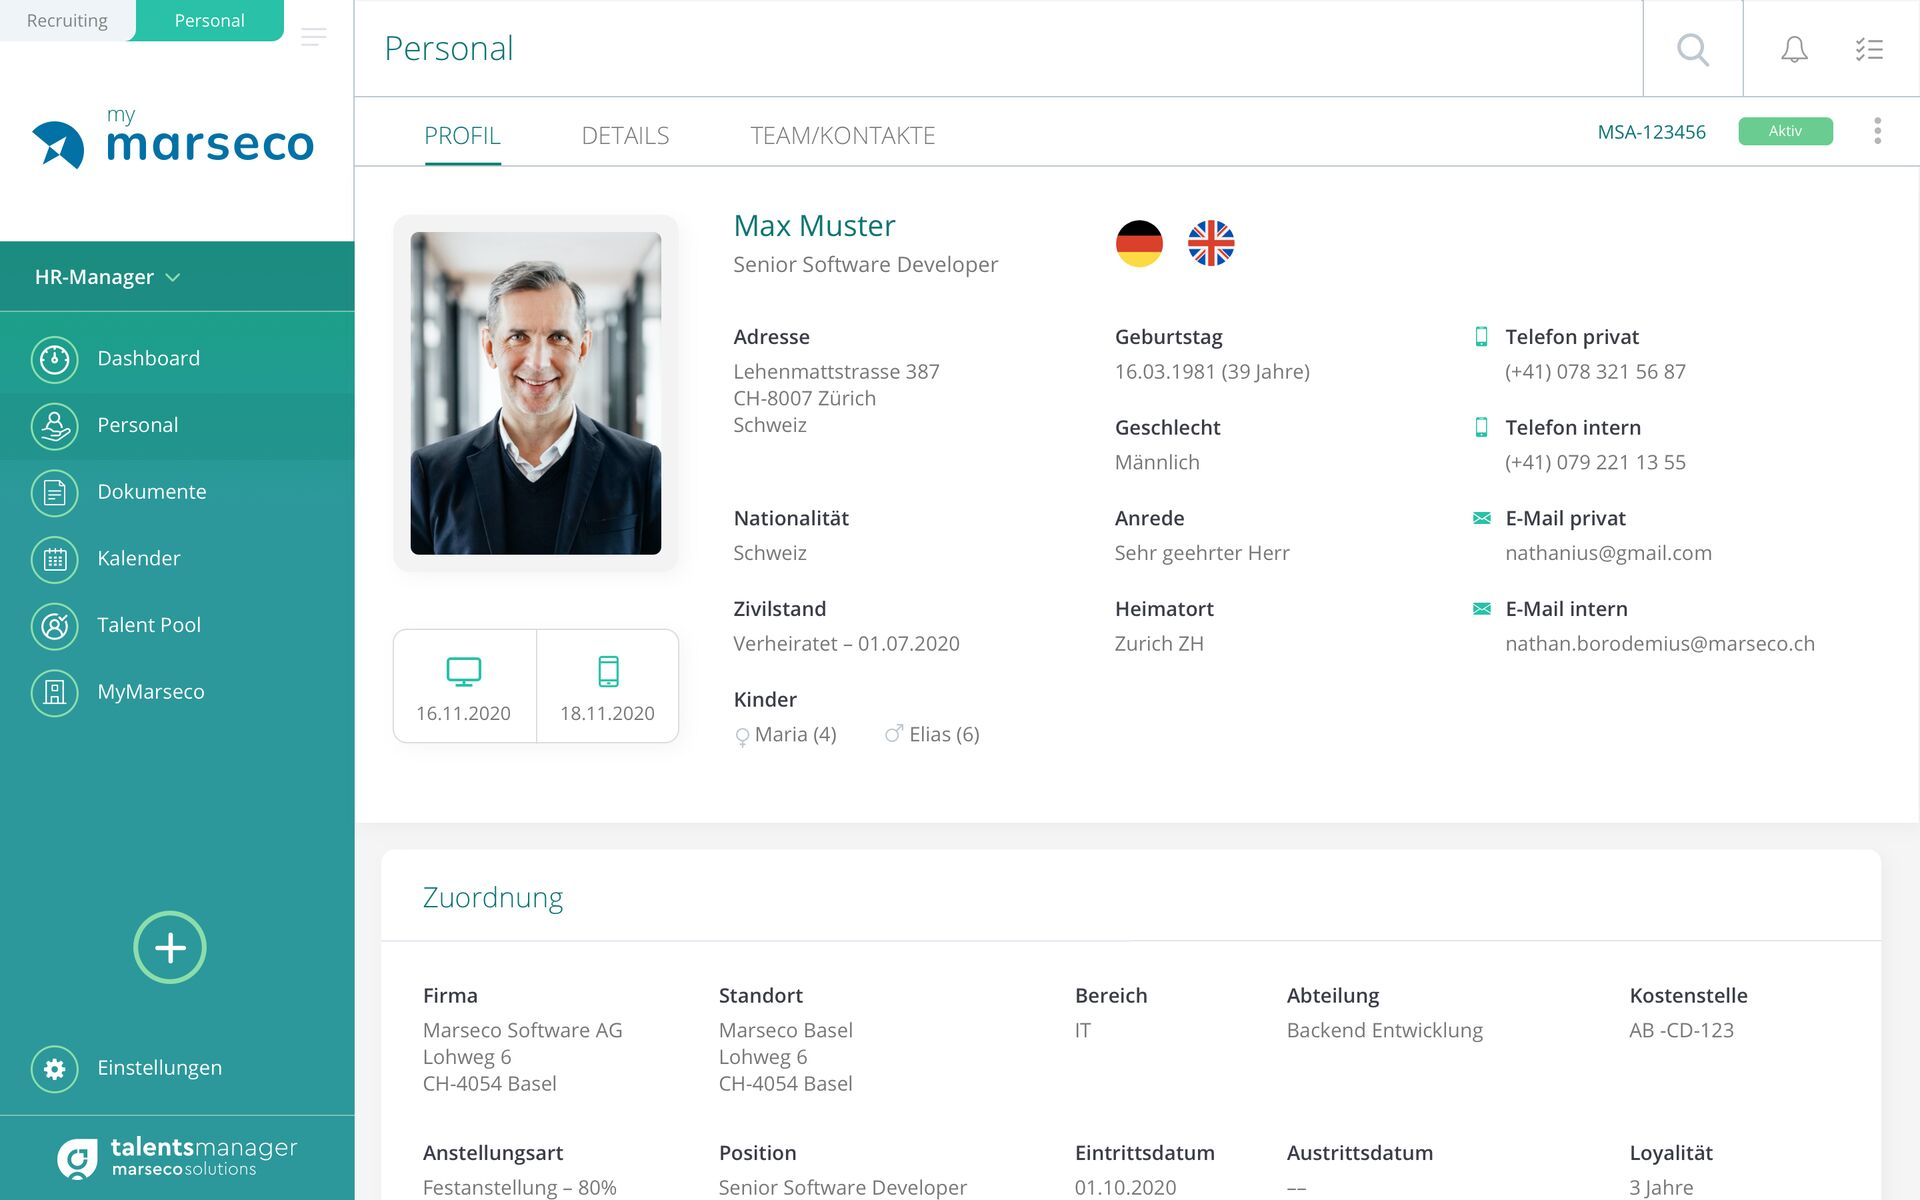 Marseco Solutions talentsmanager - Digitale Personalakte